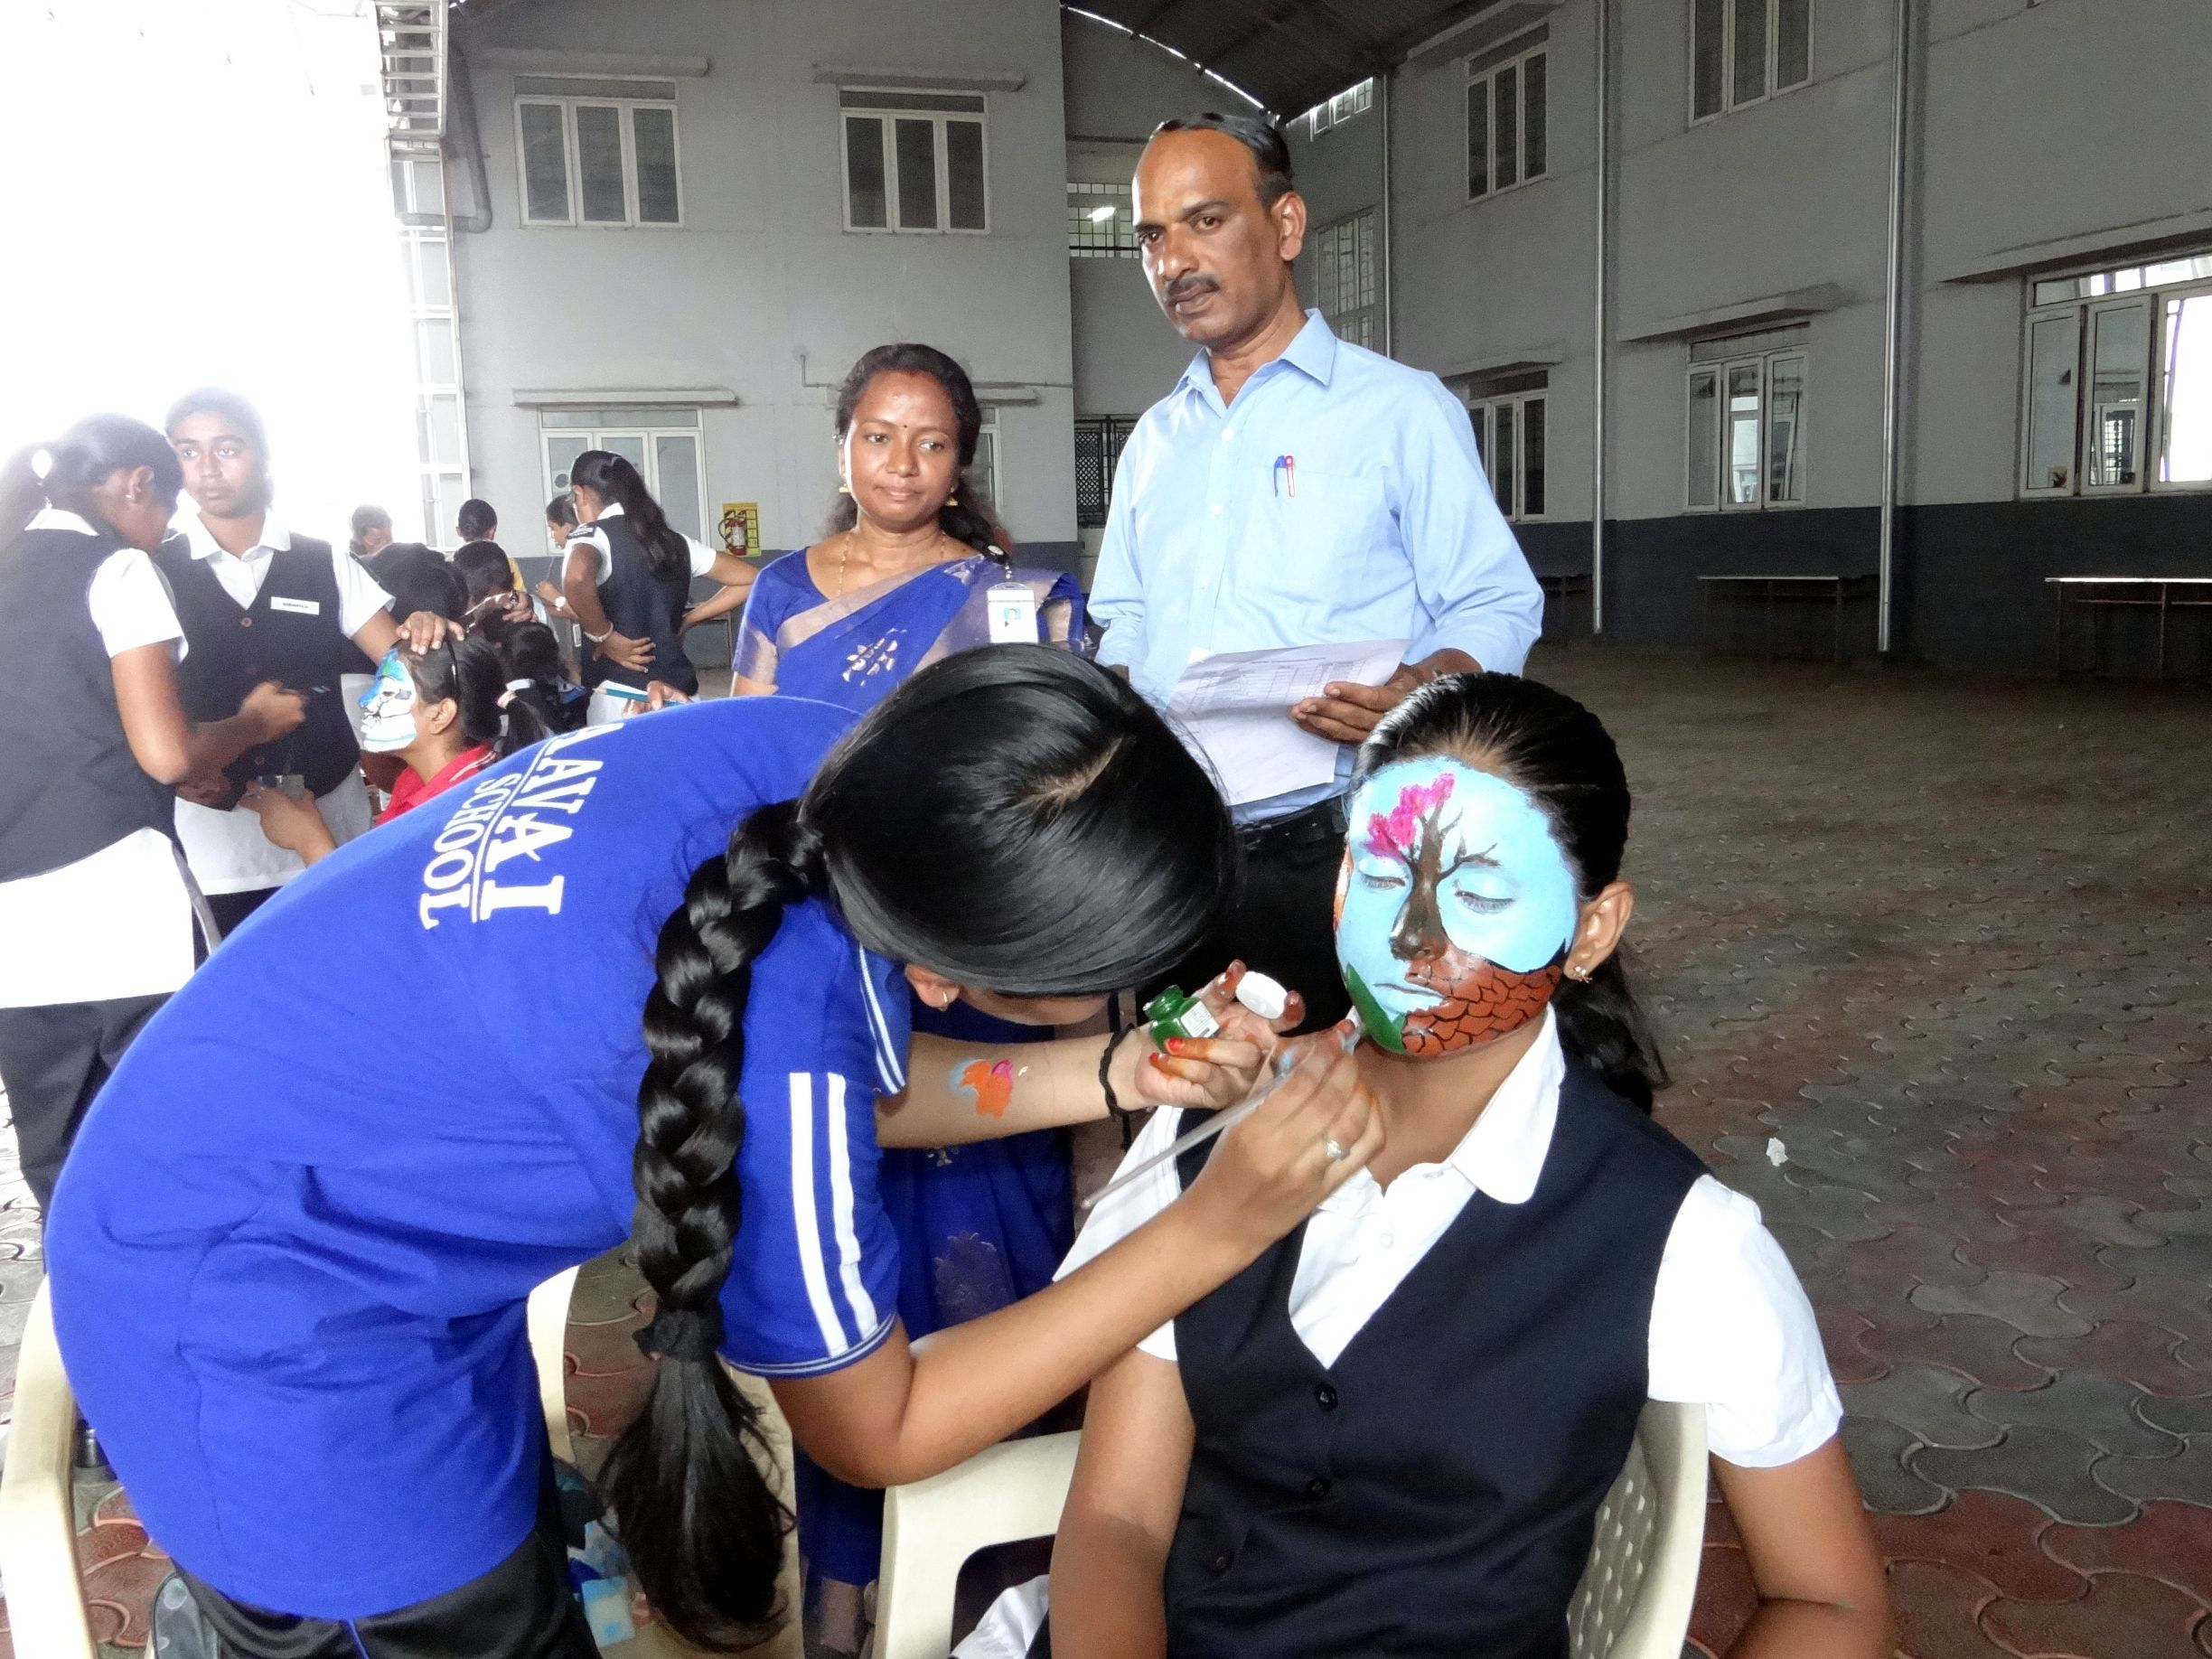 FACE PAINTING COMPETITION